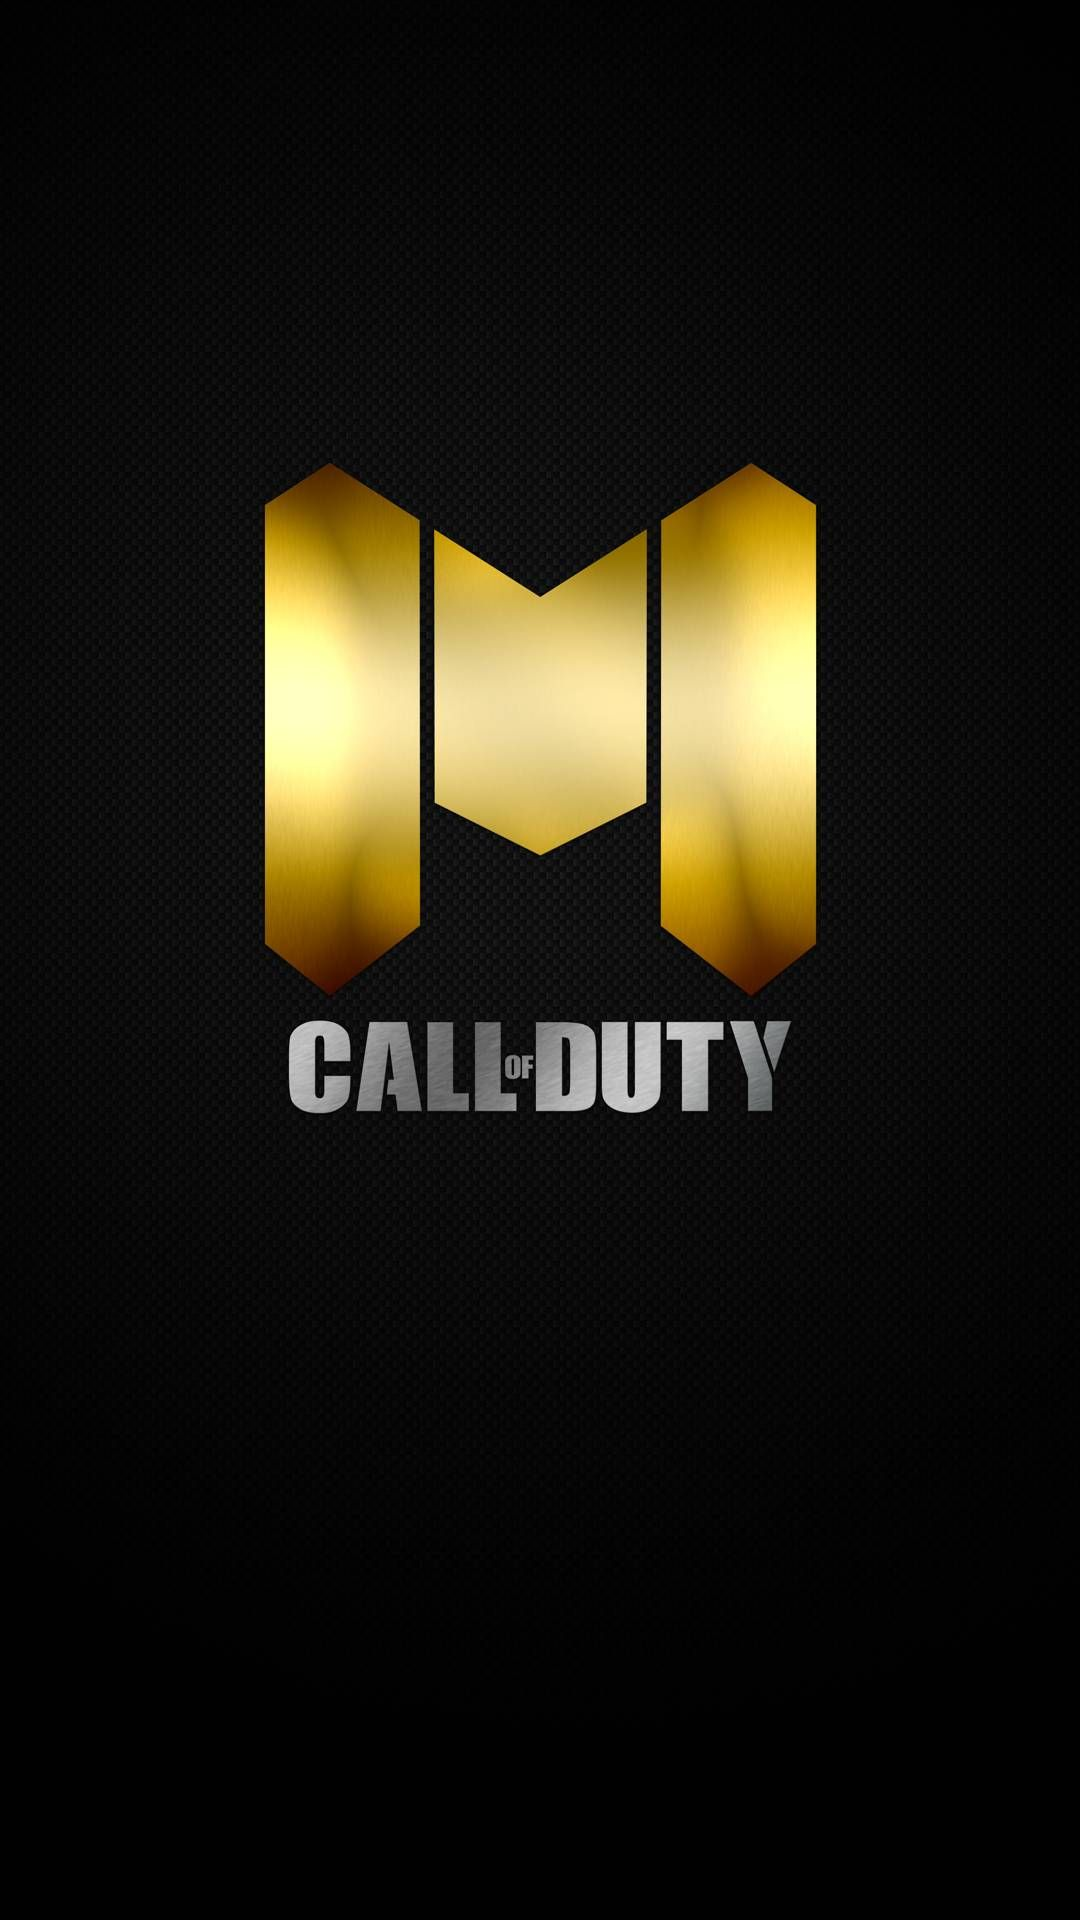 Call Of Duty Mobile Logo Wallpapers Top Free Call Of Duty Mobile Logo Backgrounds Wallpaperaccess